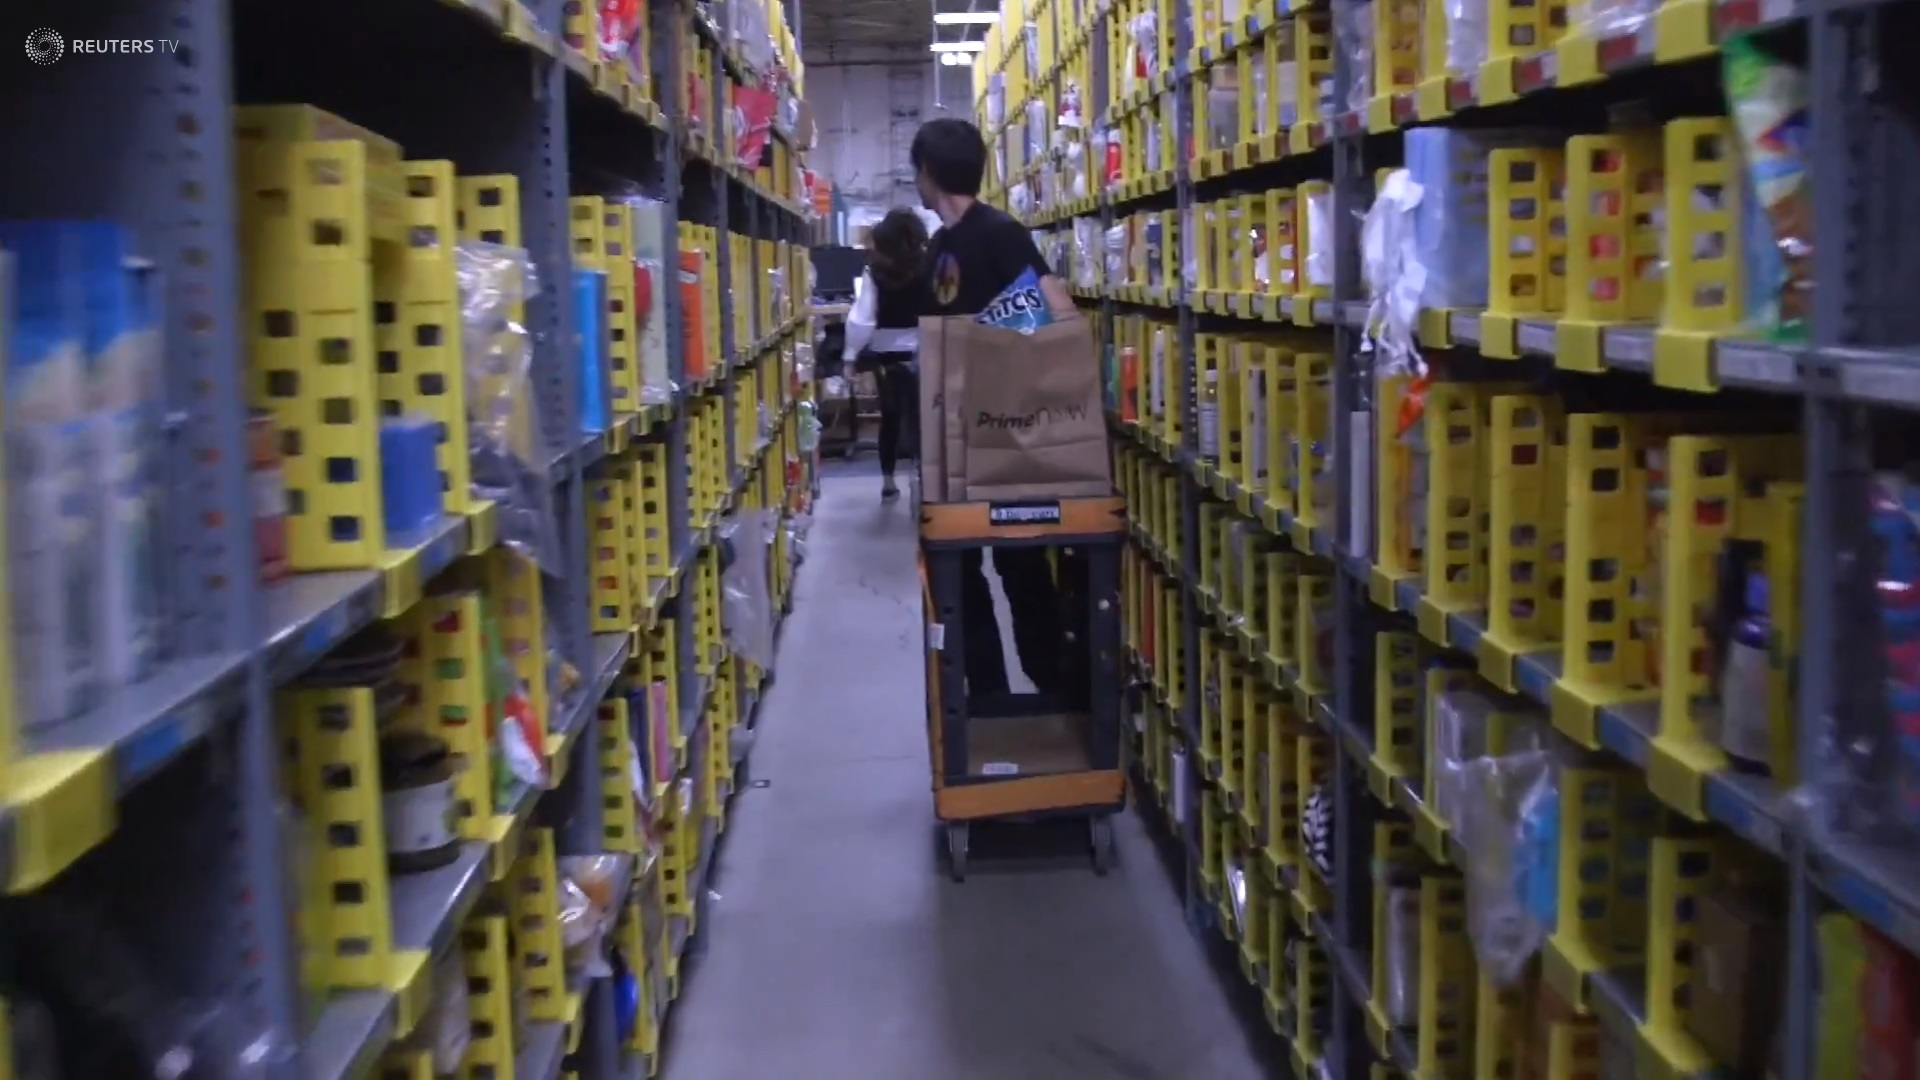 Man running through shelves to fulfill orders.